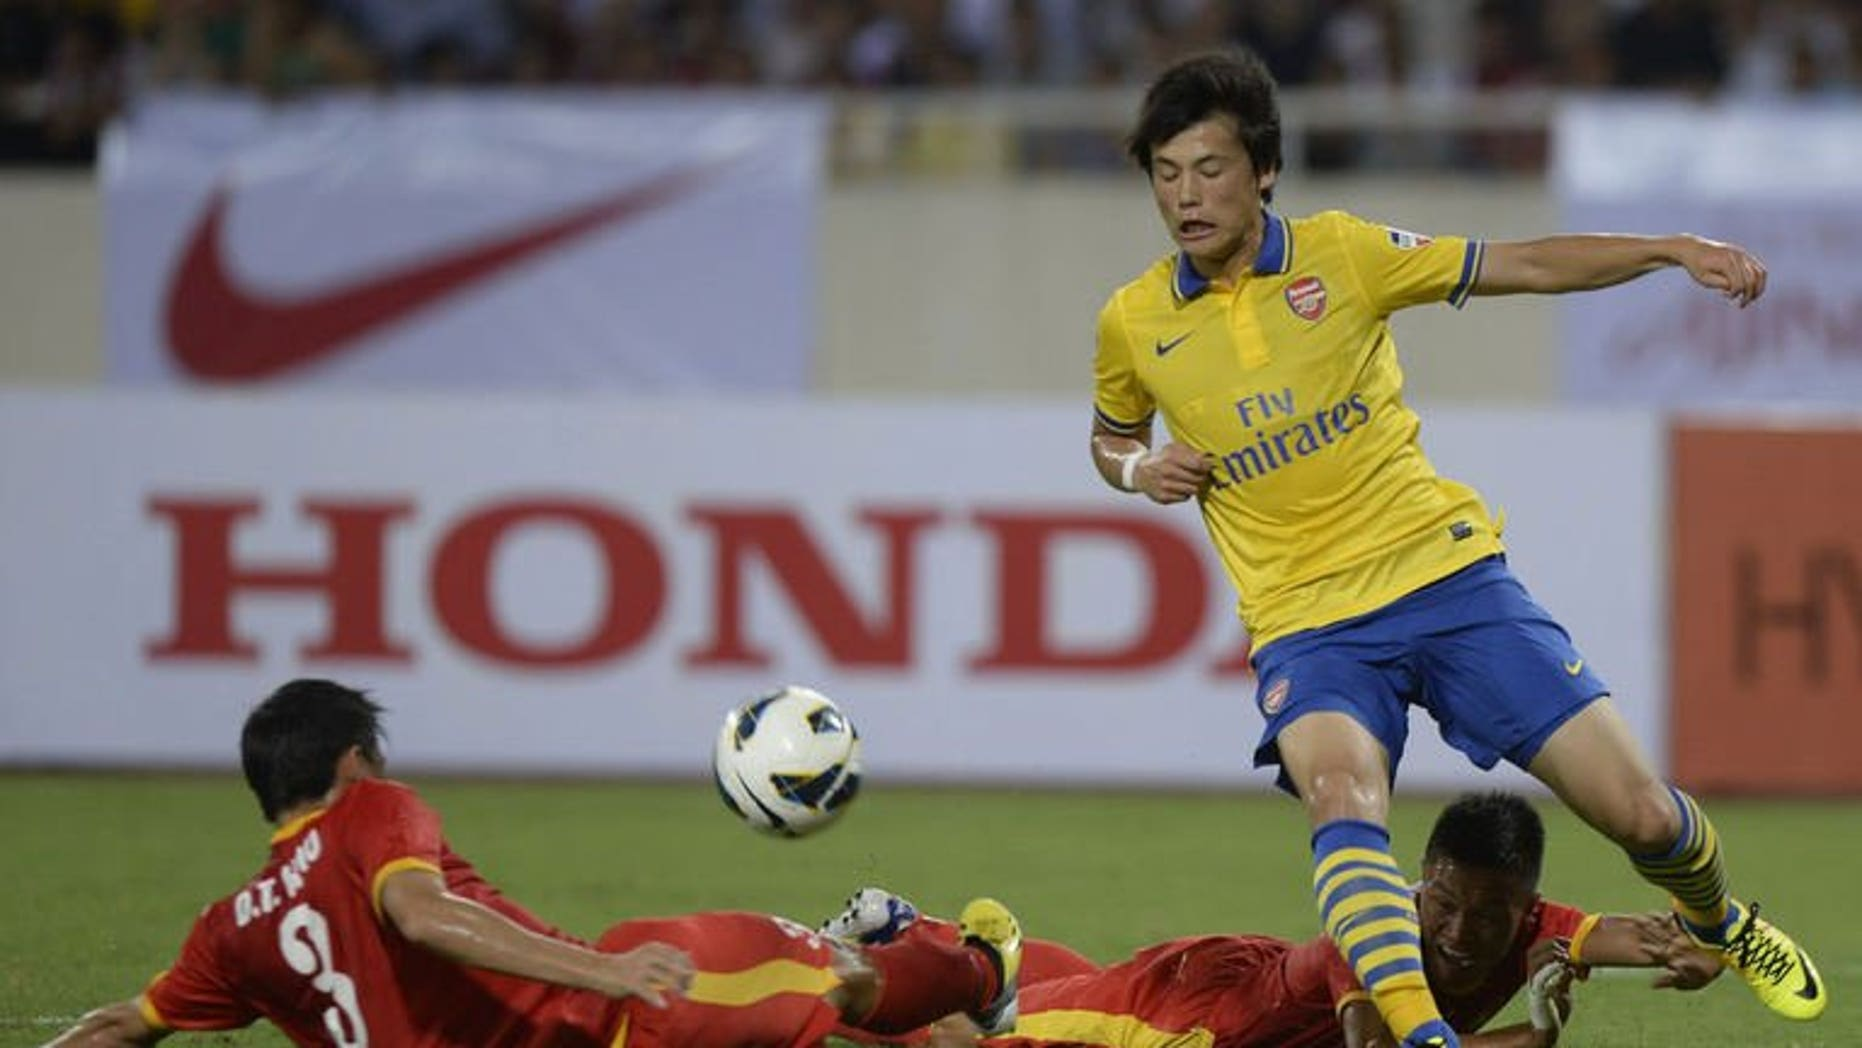 Arsenal's Rio Miyaichi (R) fights for the ball with Vietnam's Duong Thanh Hao (L) and Nguyen Huy Hung during a friendly football match against Vietnam's national team at Hanoi's My Dinh stadium on July 17, 2013. Arsenal won 7-1.